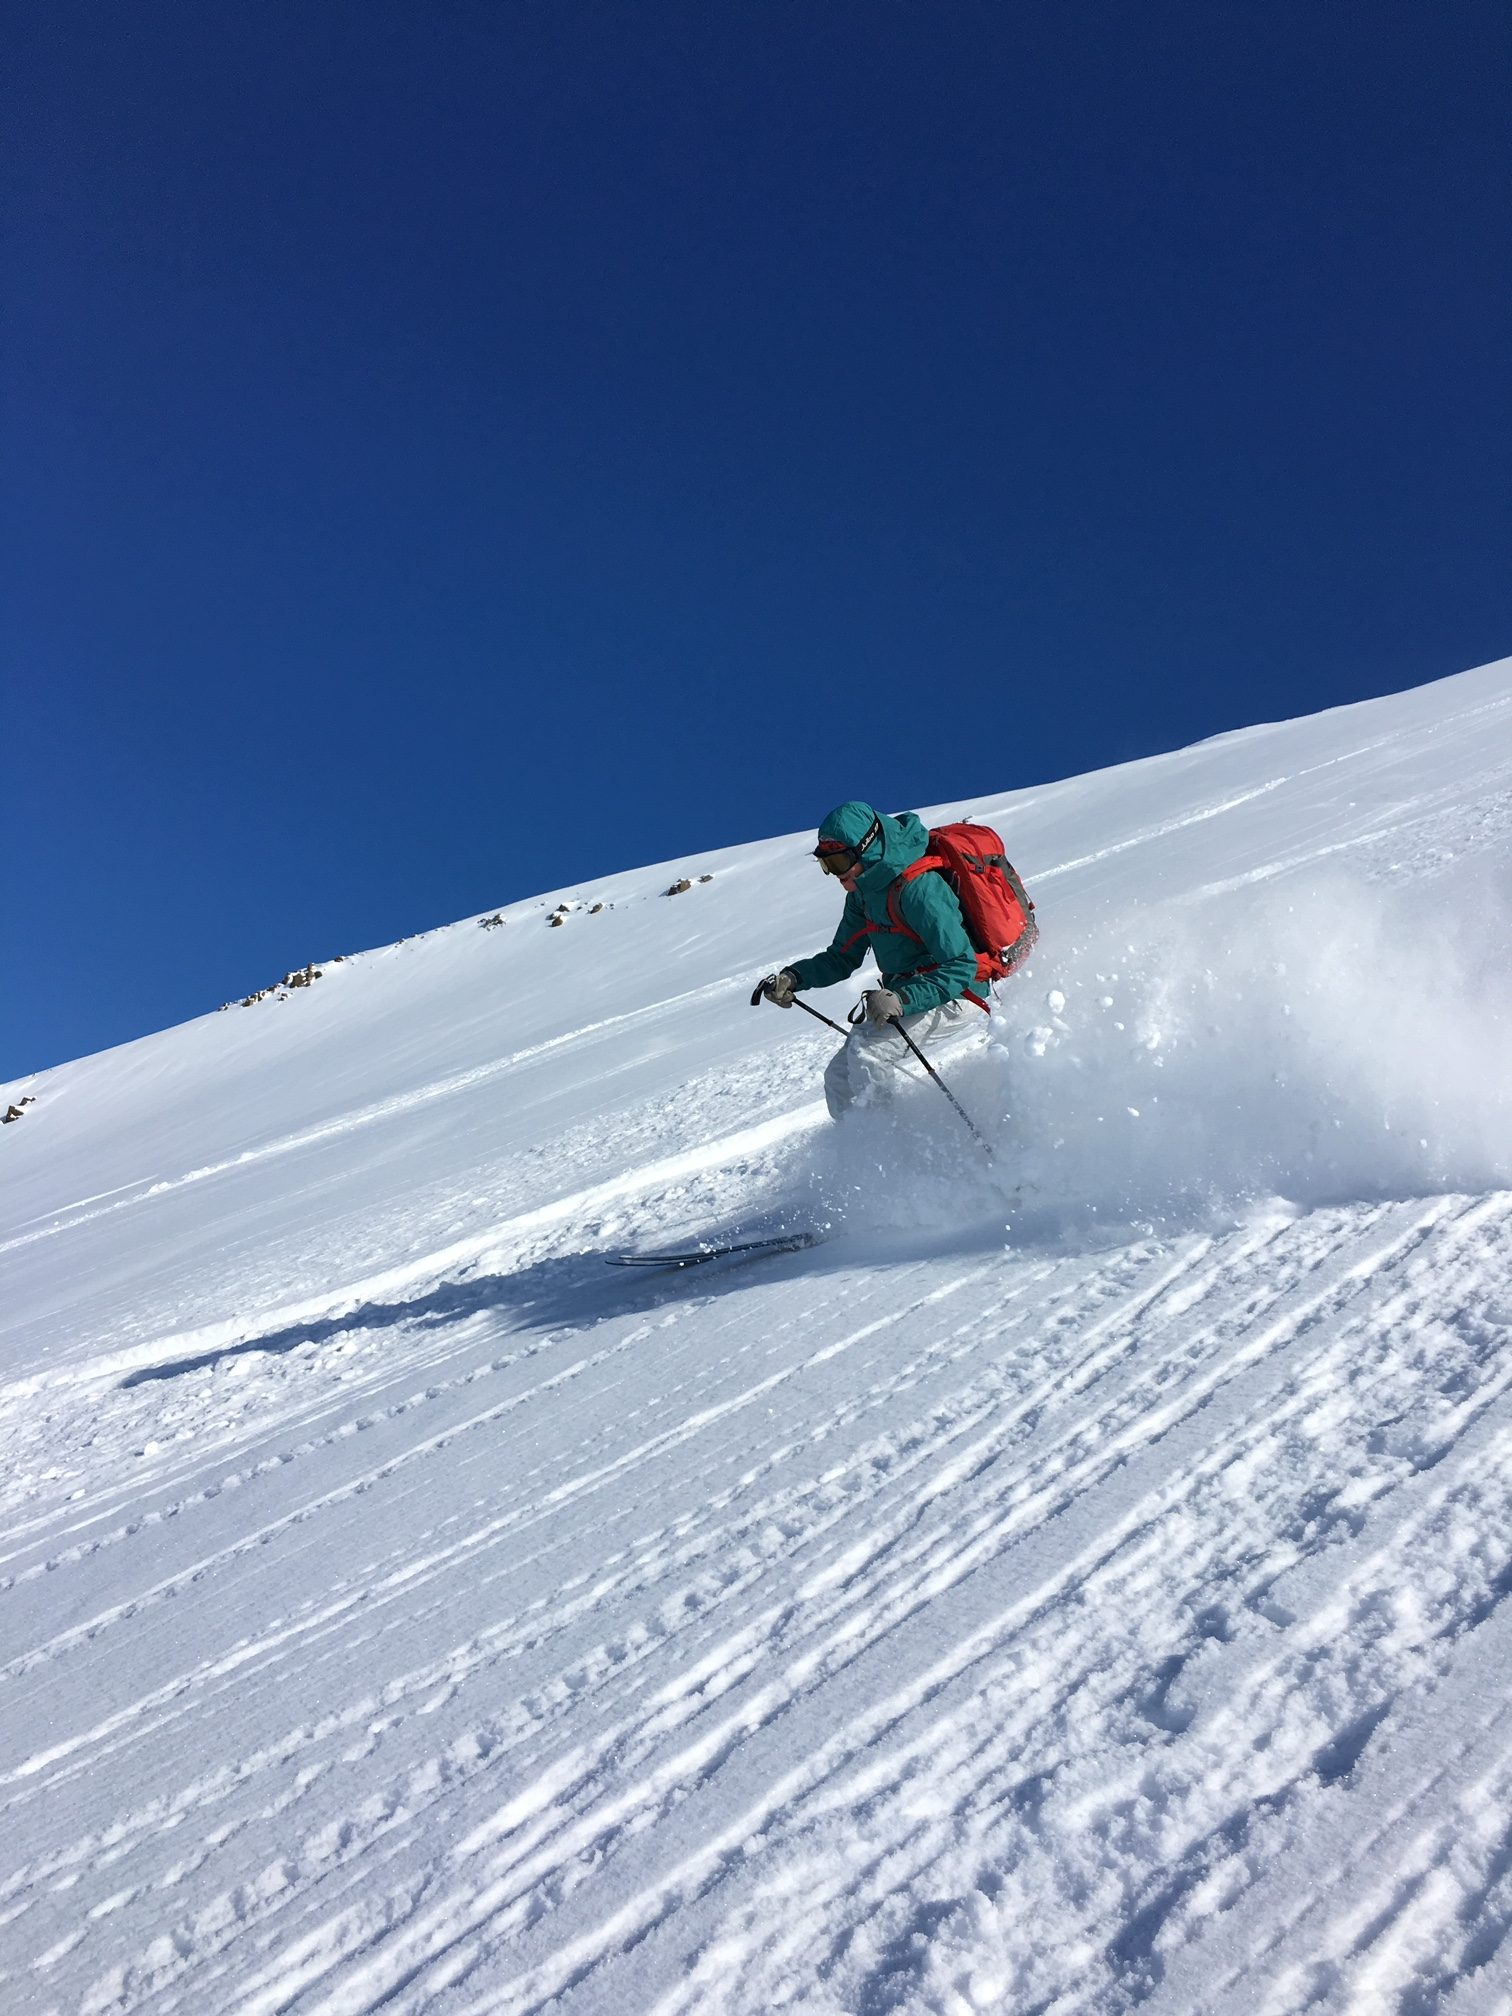 strength Training for backcountry skiing helps Angela Hawse make perfect turns in Iceland